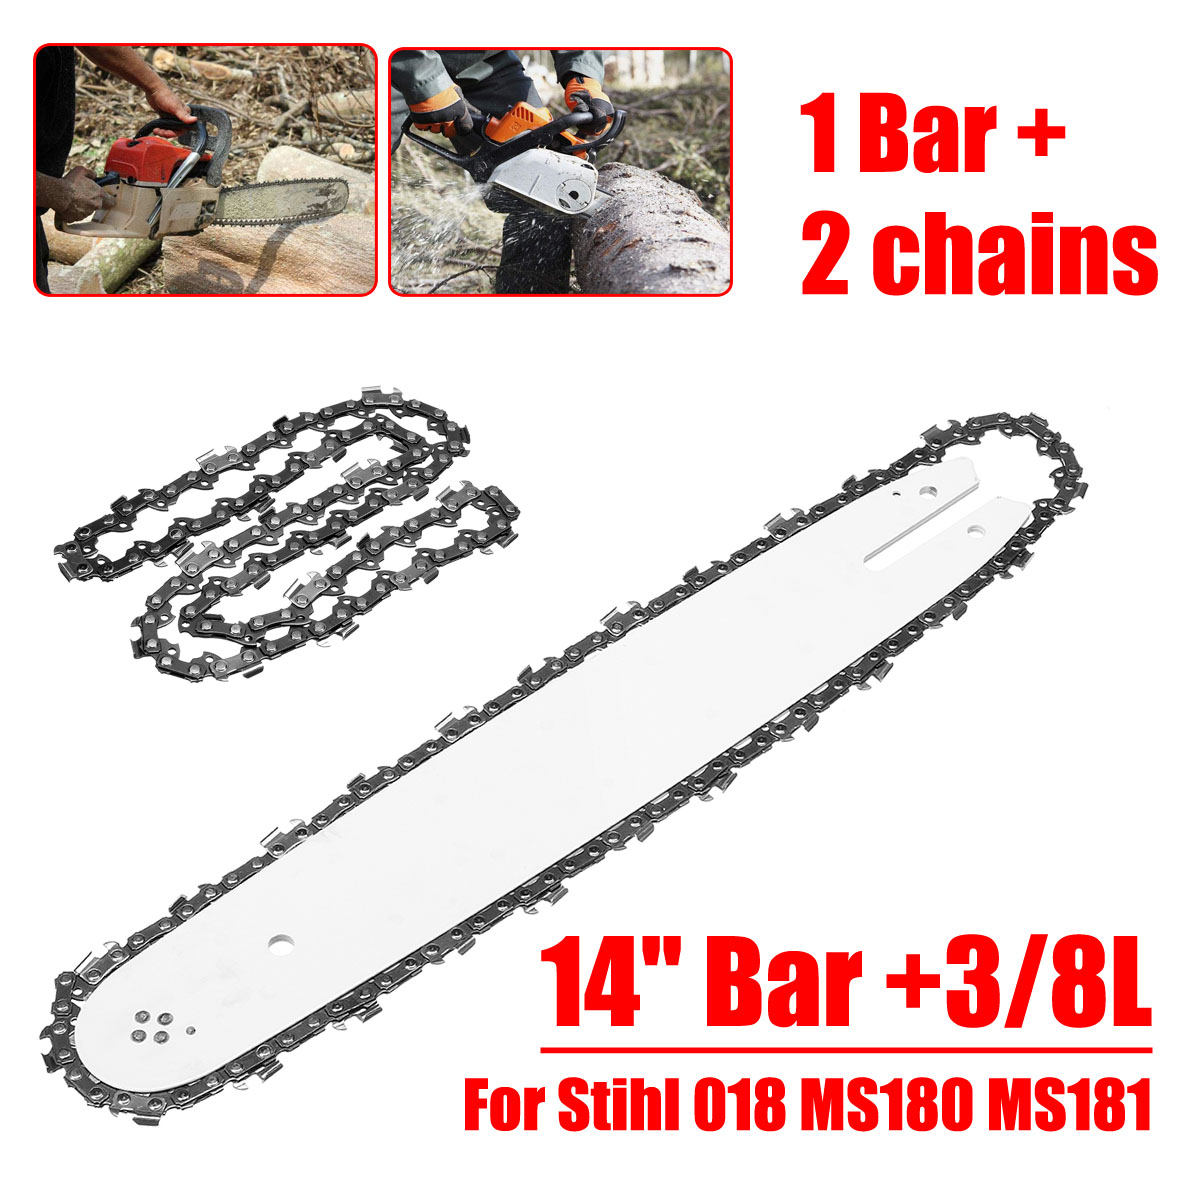 "Doersupp 14"" Bar +3/8L 2pcs Chains Fit For Stihl 018 MS180 MS181 Chainsaws Chain Saw"